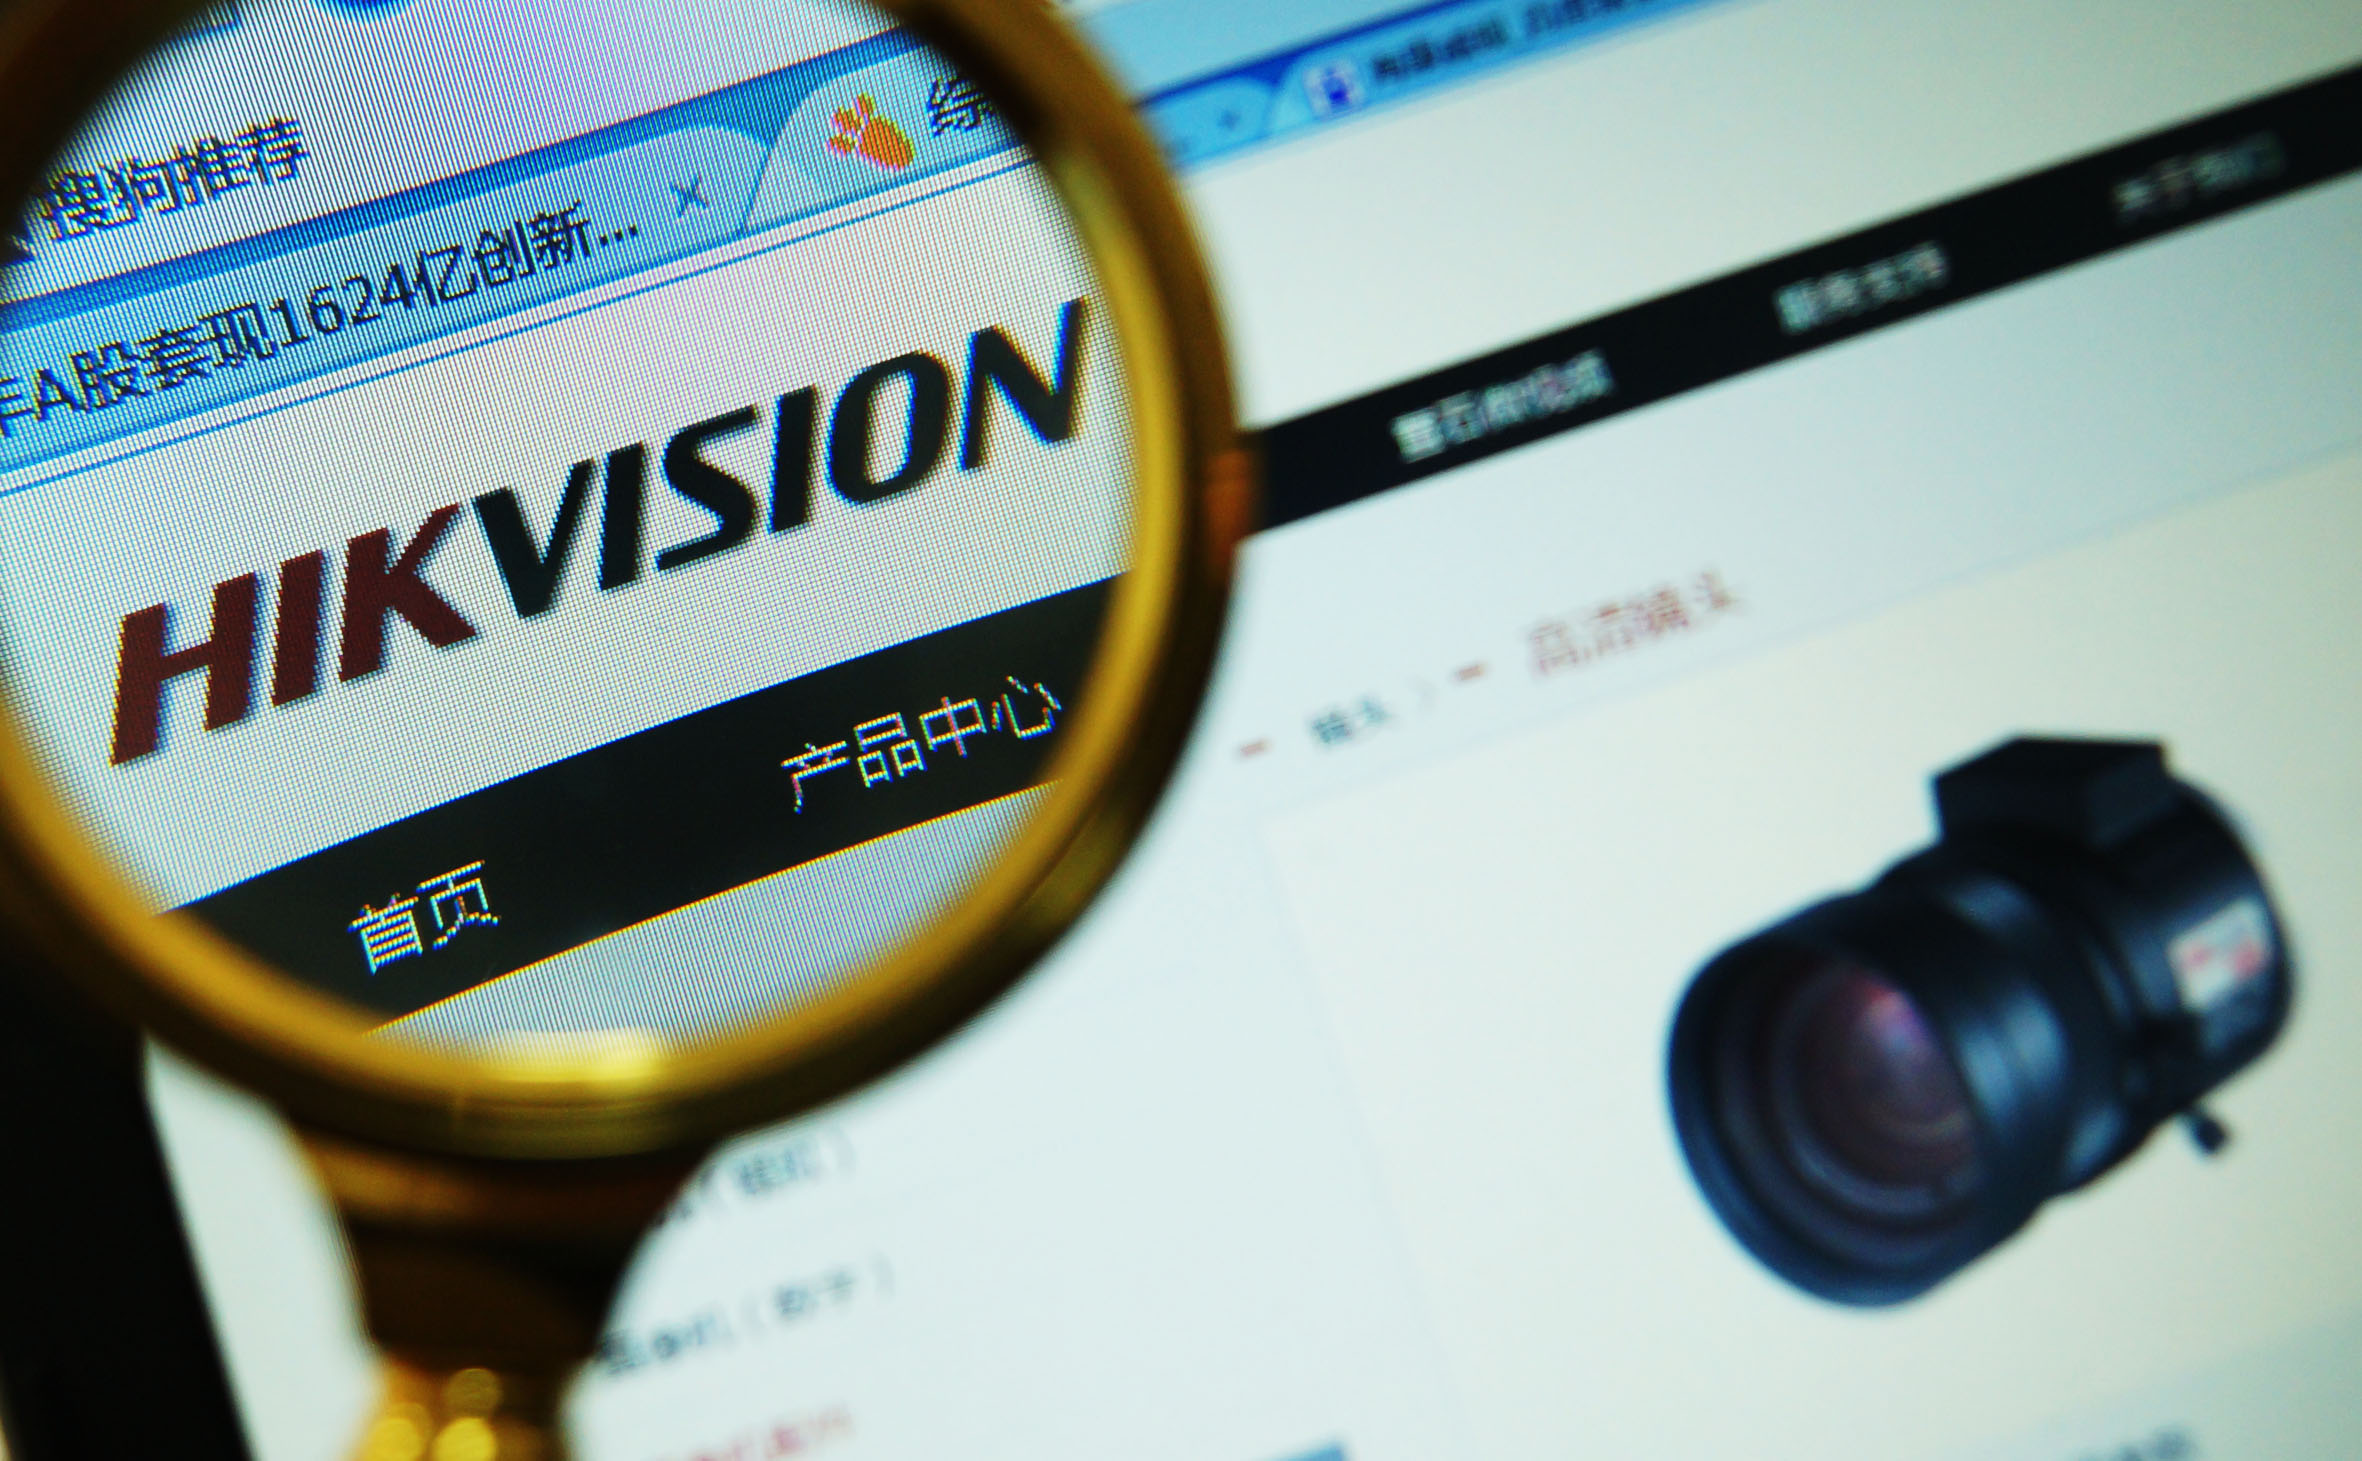 China's Hikvision downplays US risks amid ZTE woes - Nikkei Asian Review